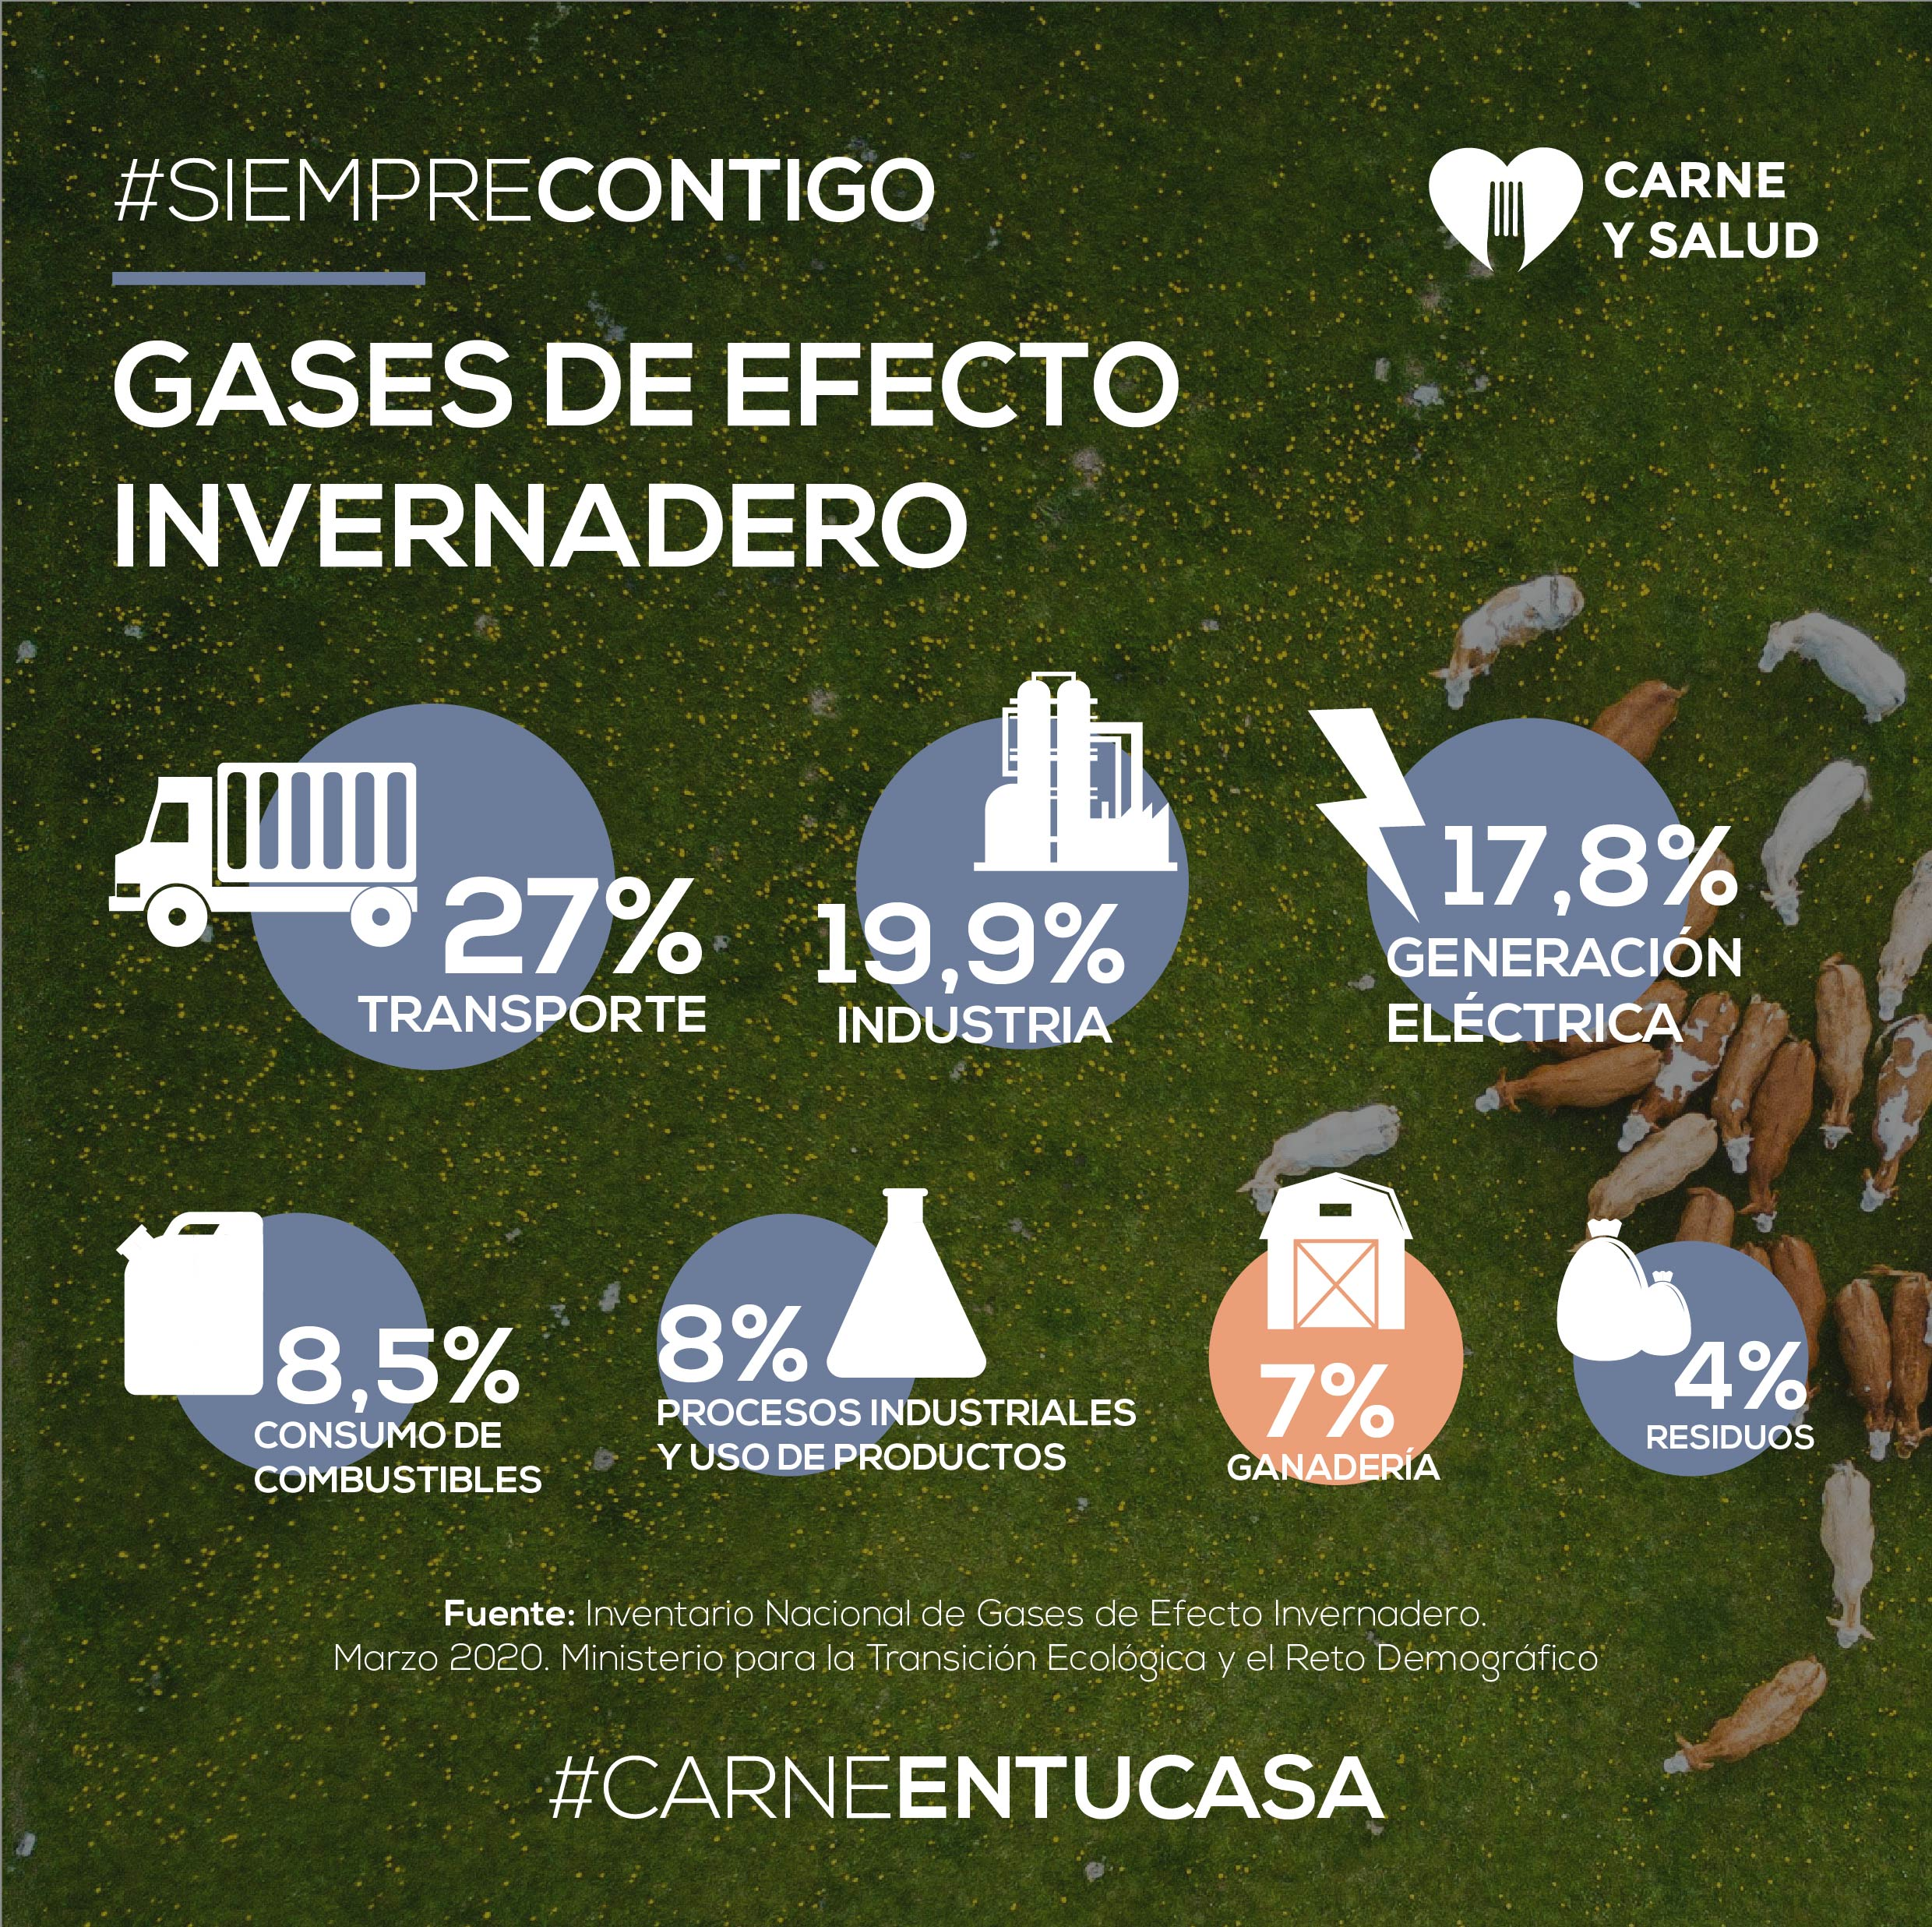 Carne Y Salud: Livestock And Meat Production And Greenhouse Gas Effects During Covid-19